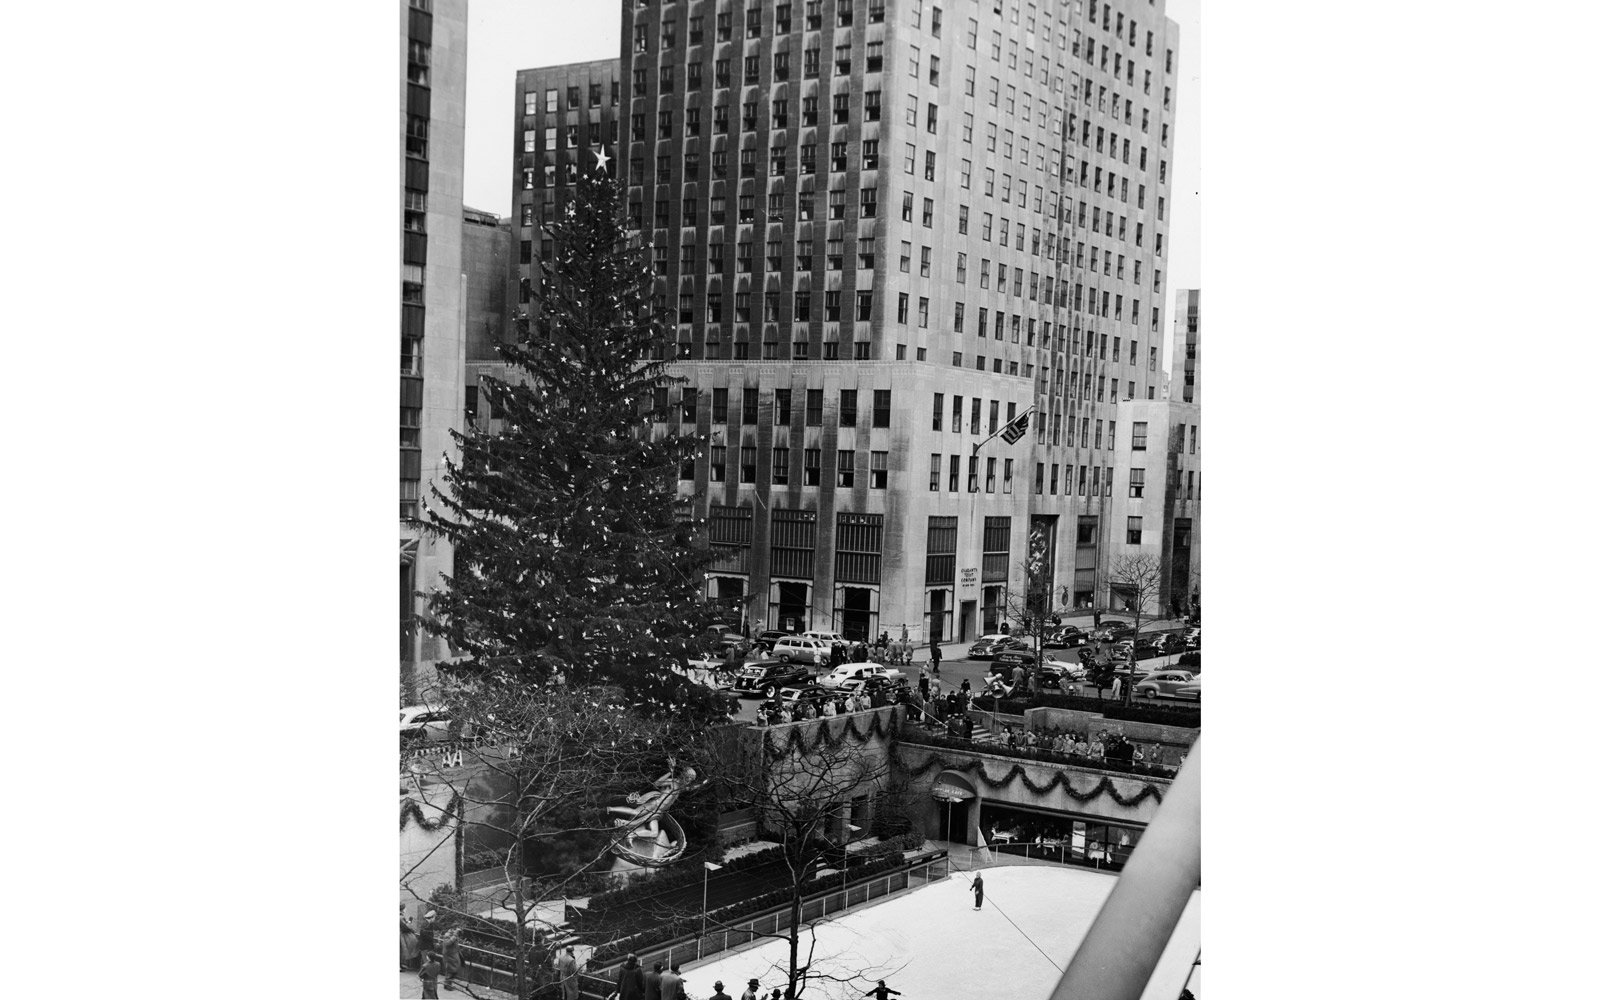 Arial view of the ice rink and decorated Christmas tree in Rockefeller Plaza, New York, New York, circa 1950s